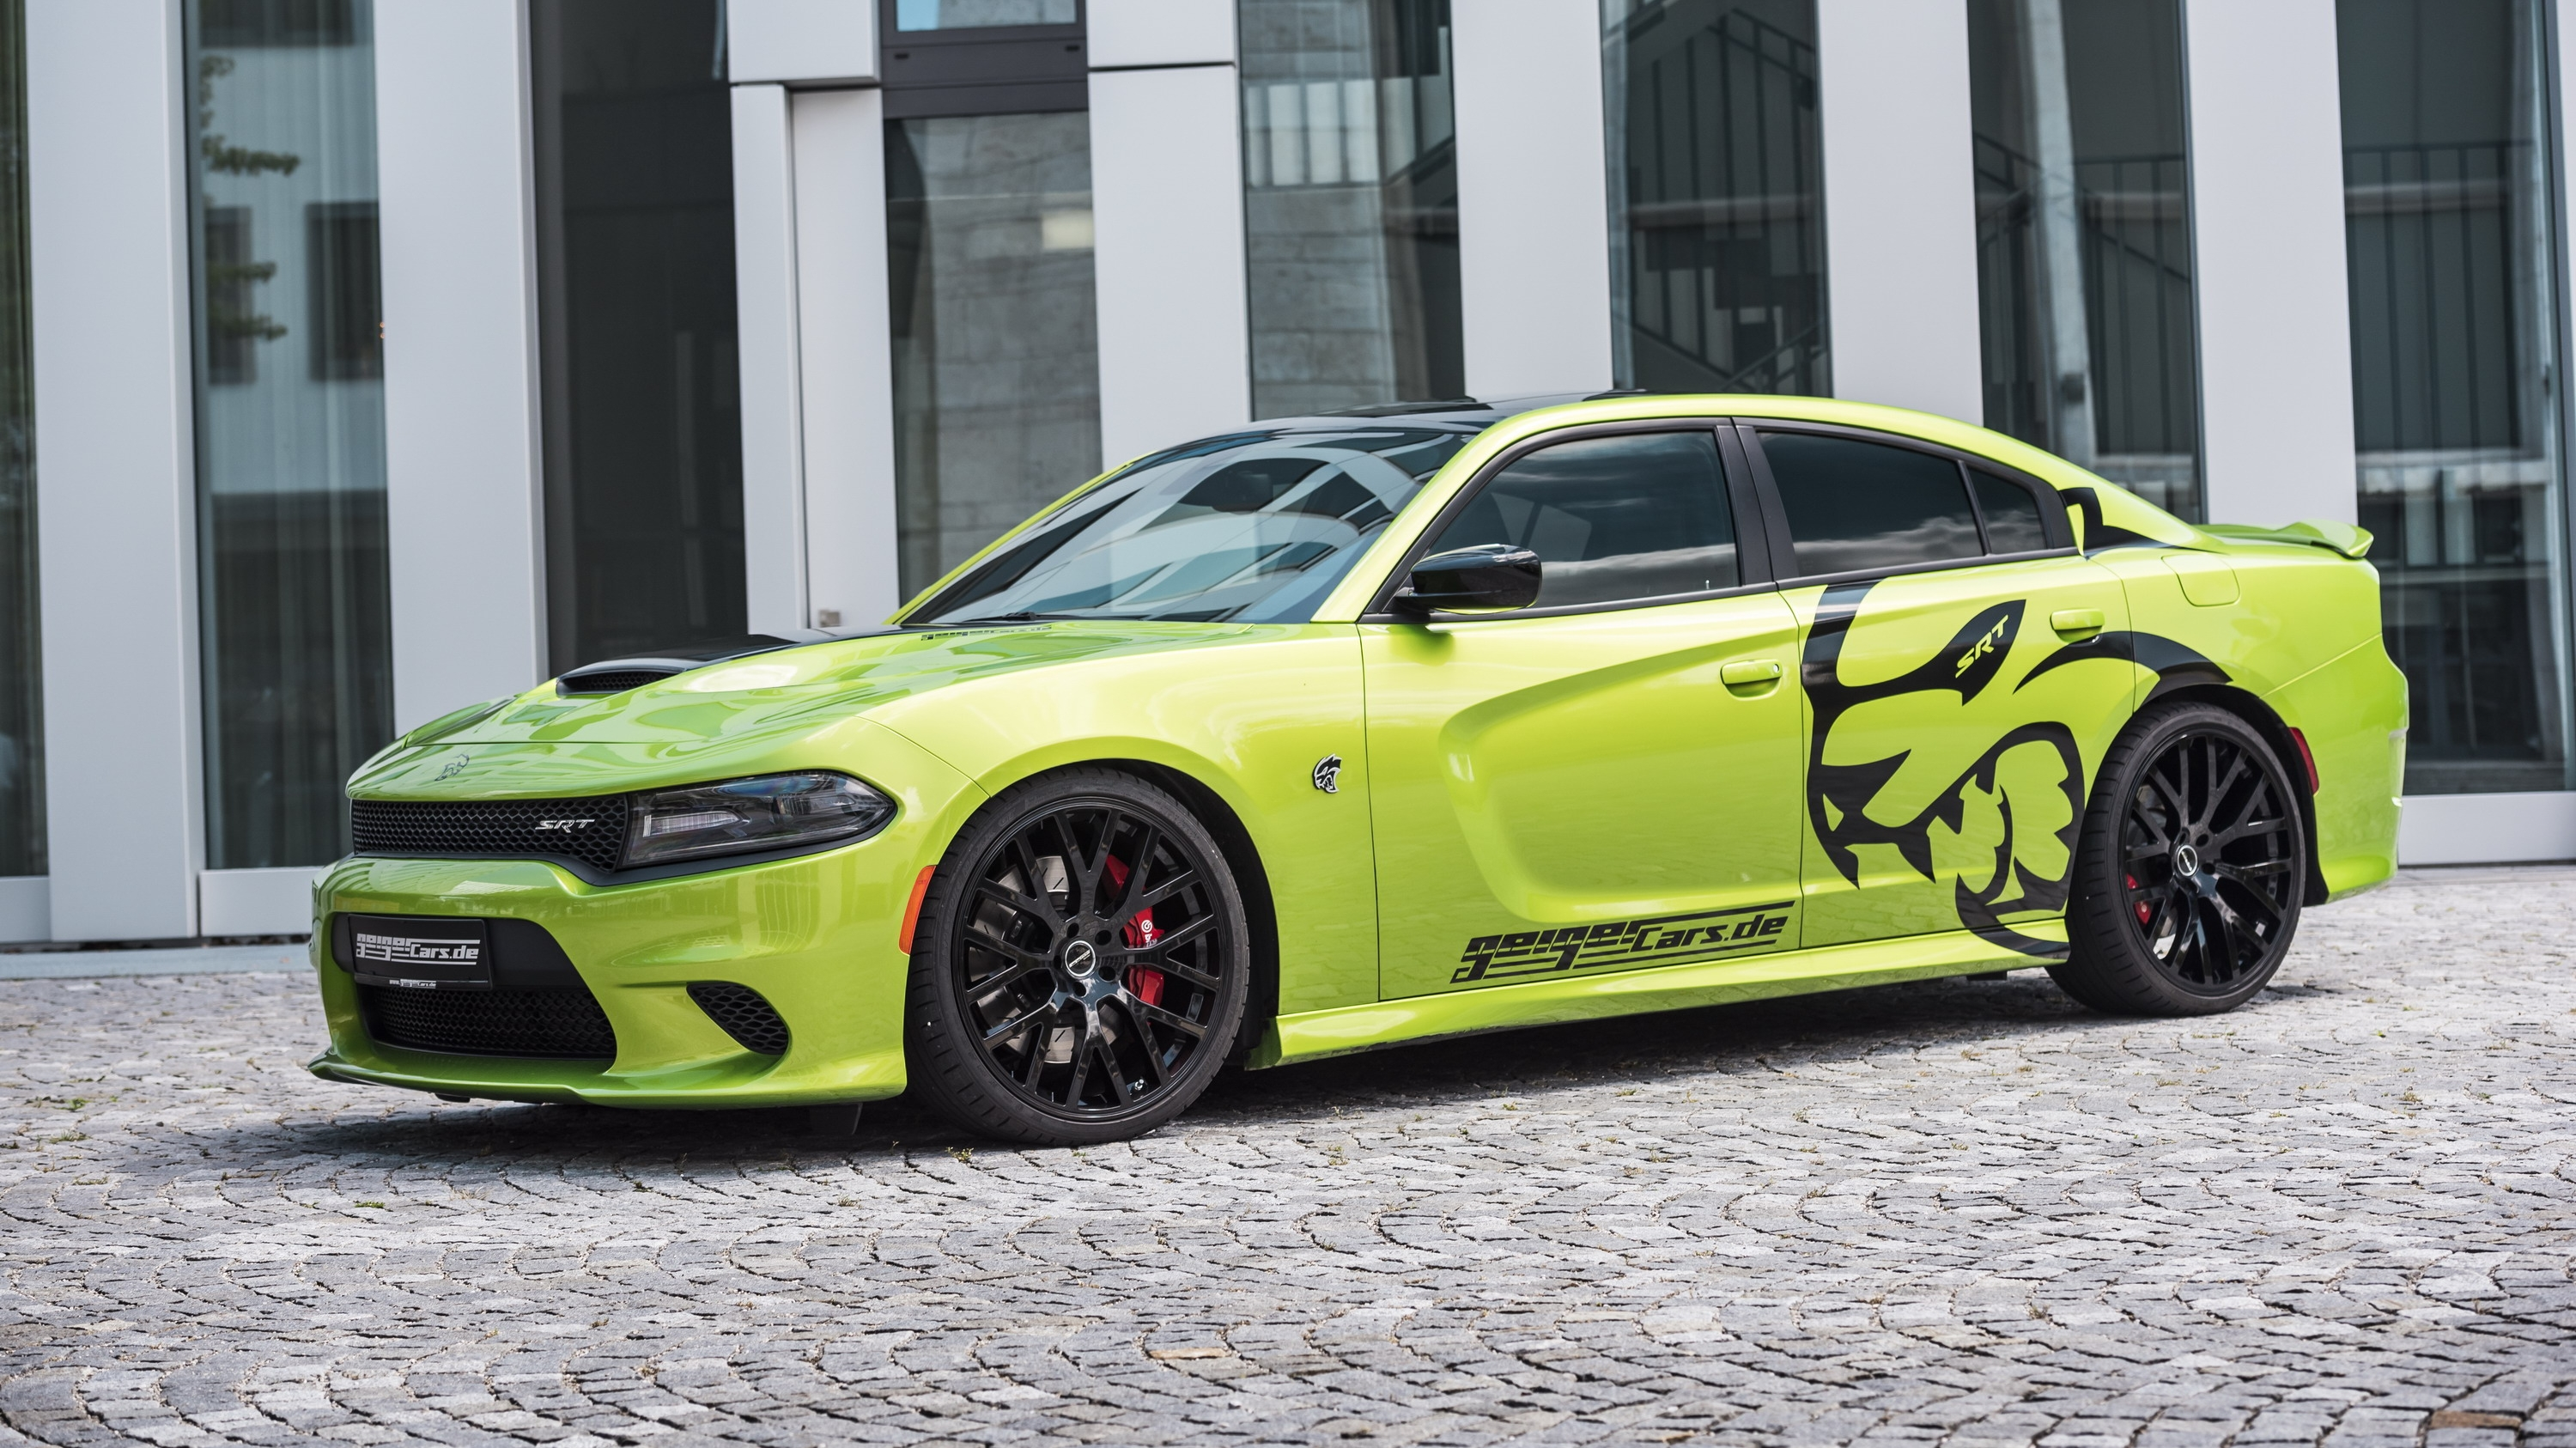 Srt Hellcat >> 2016 Dodge Charger SRT Hellcat By Geiger Cars Review - Top Speed